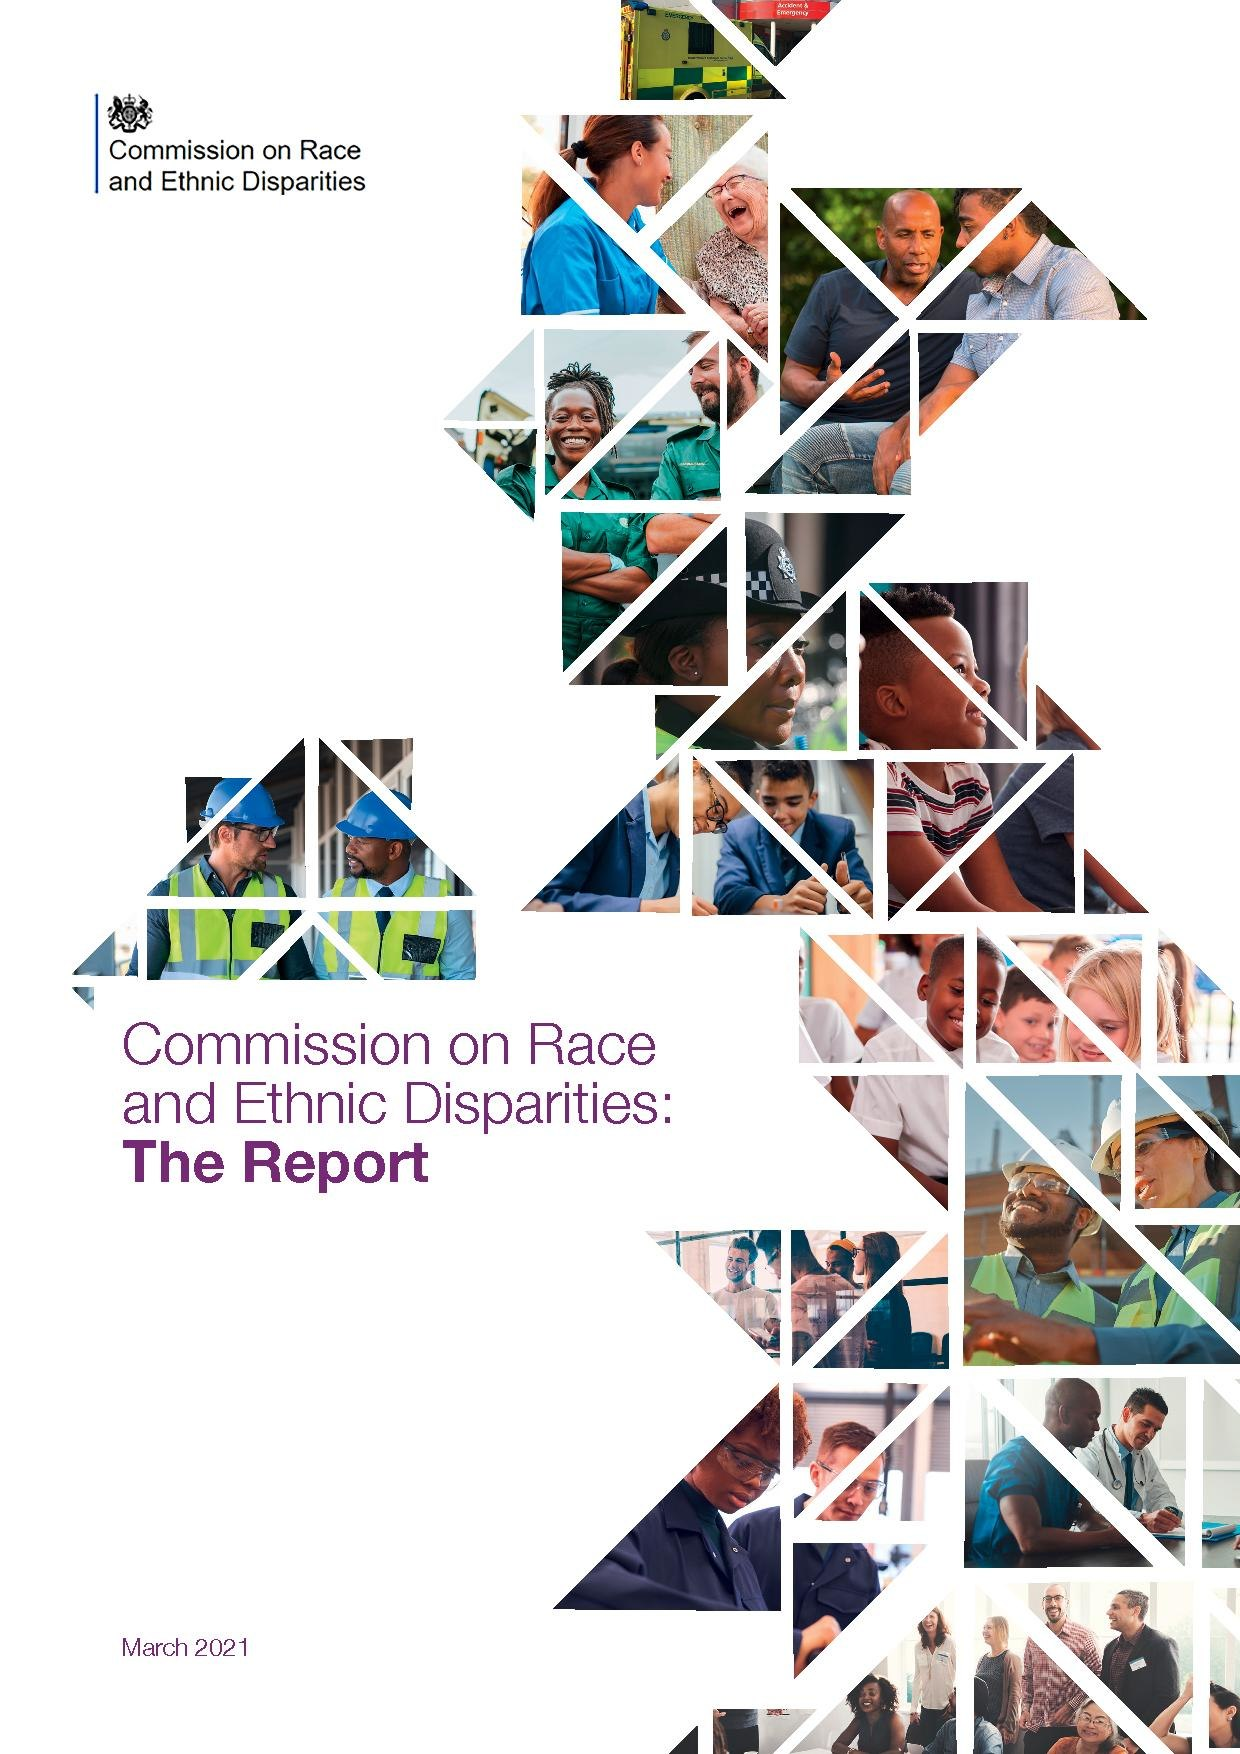 UK commission responds to criticism of report on racial equality